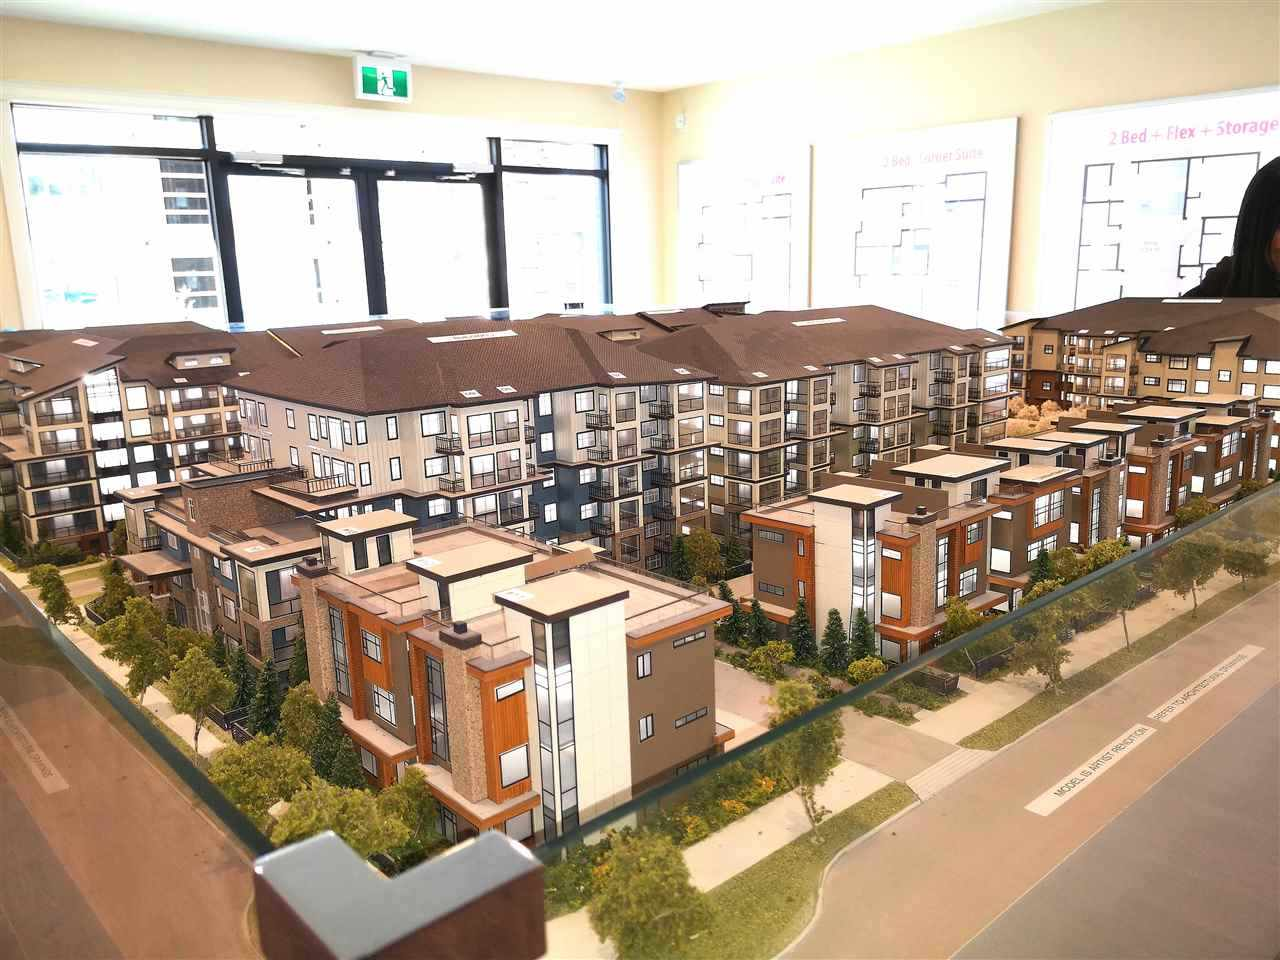 Yorkson Park West estimated completion early 2021. 2 bed & Den (800sf) + Solarium 92sf with gas, hook up for BBQ. air conditions, 9ft Ceiling, energy efficient heat pump. Heated tile floors in bathroom, laminated floor, stainless-s appliances, N/G cooktop, quartz countertops, 2 parkings & 1 locker, school, 1Hwy 1 Shopping, Recreation Carvolth park nearby.